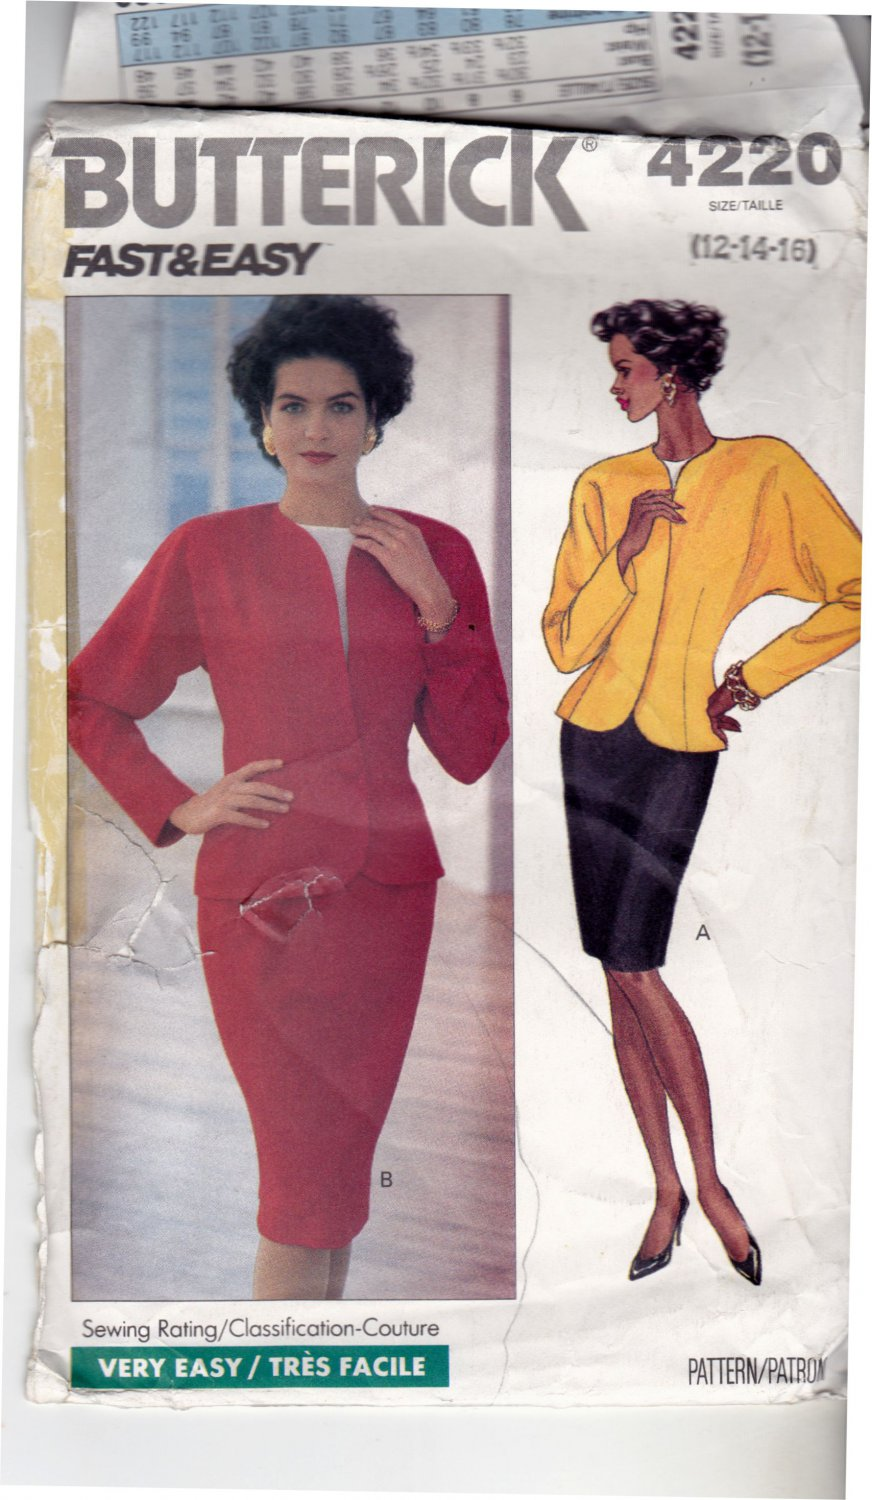 Butterick 4220 Pattern uncut 12 14 16 Unlined Jacket Shoulder Pads Tapered Skirt Pullover Blouse